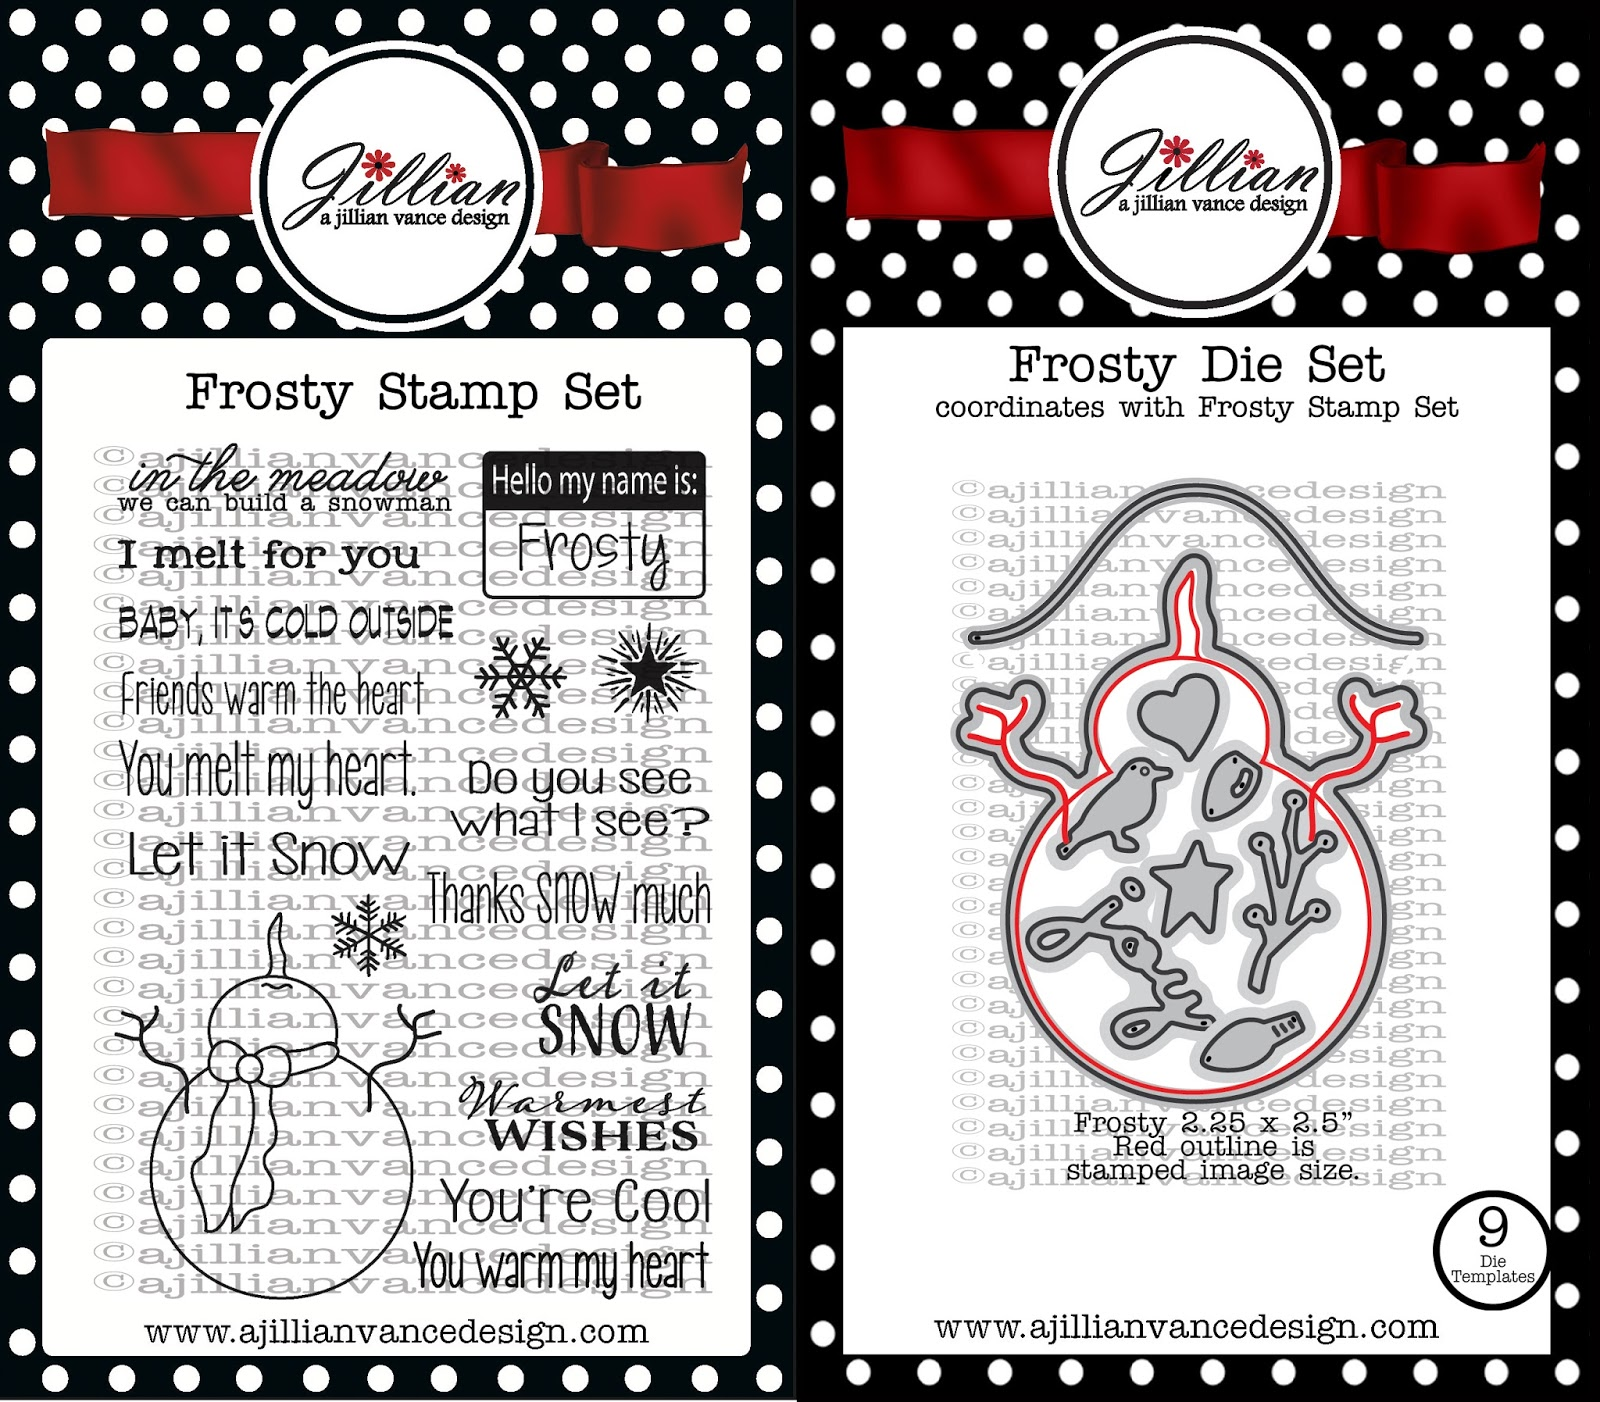 Frosty Stamp & Die Set